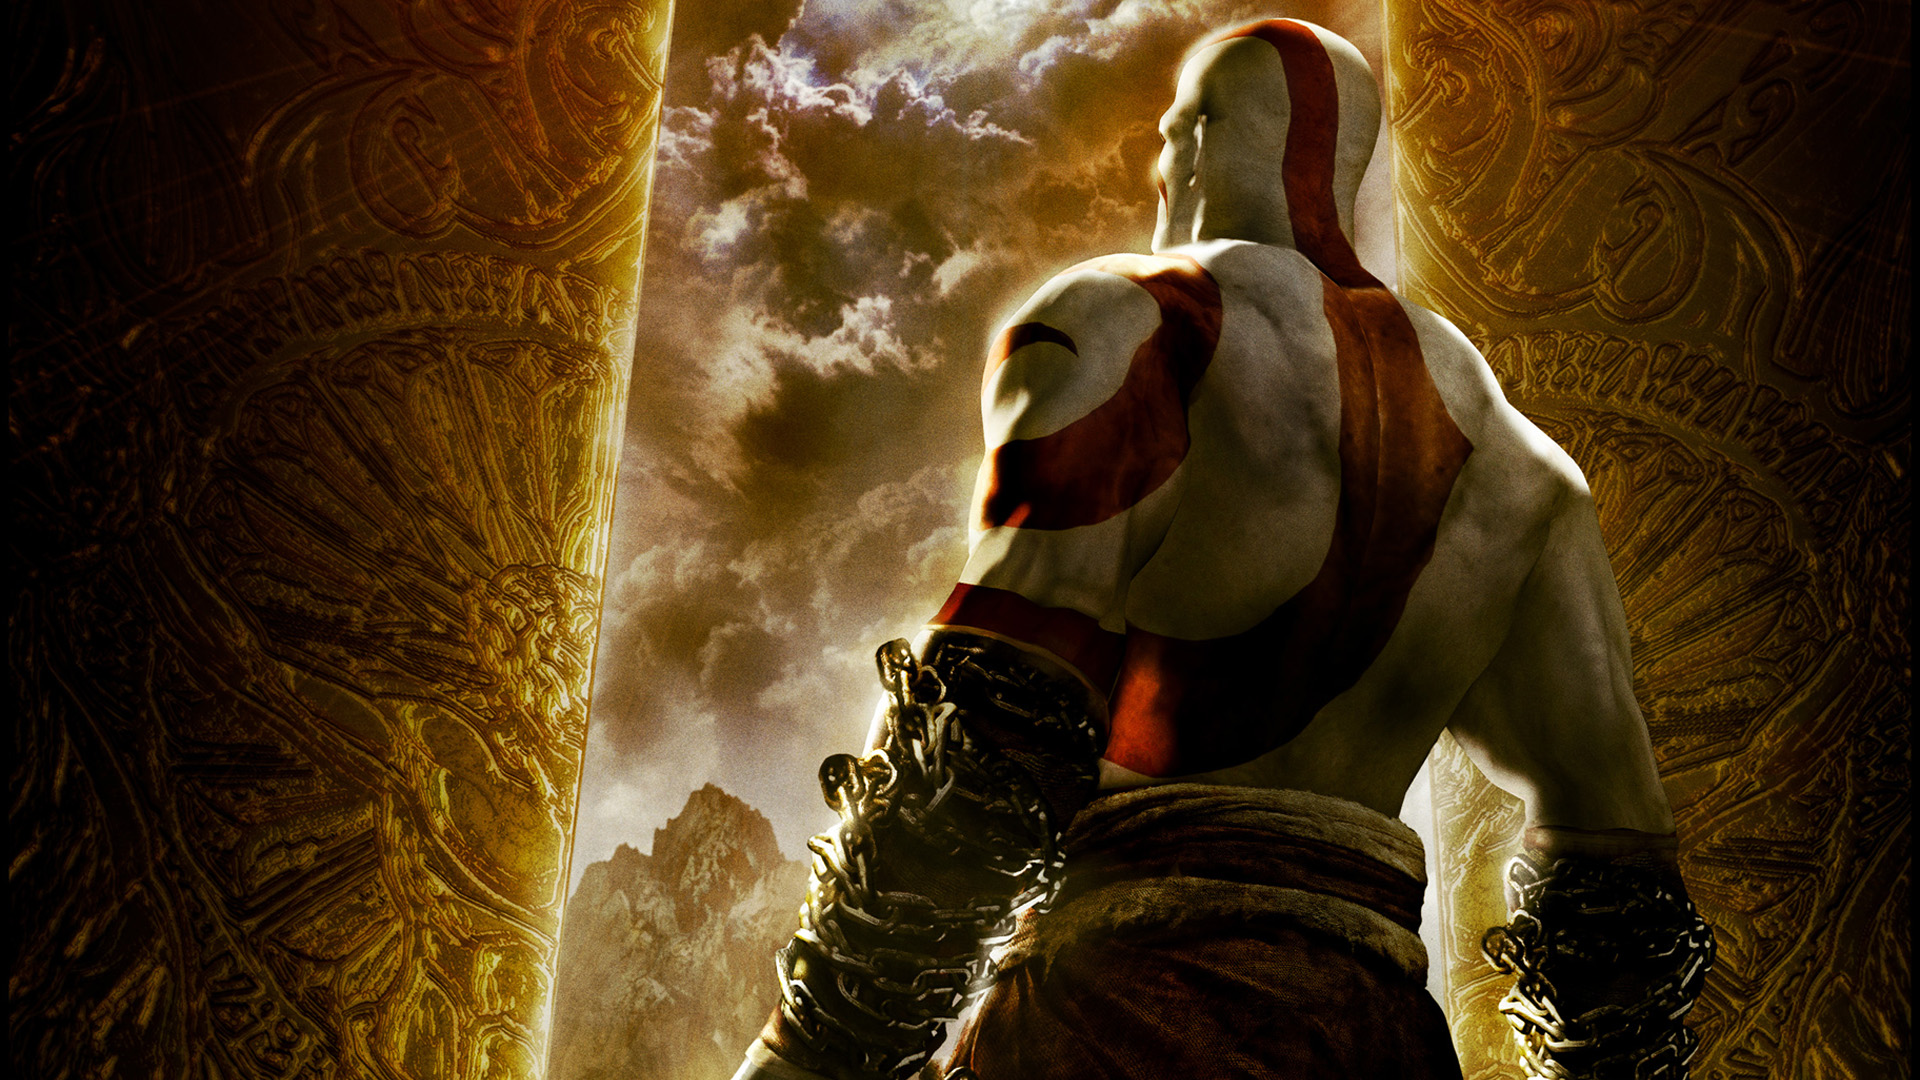 The Ultimate God of War Wallpaper